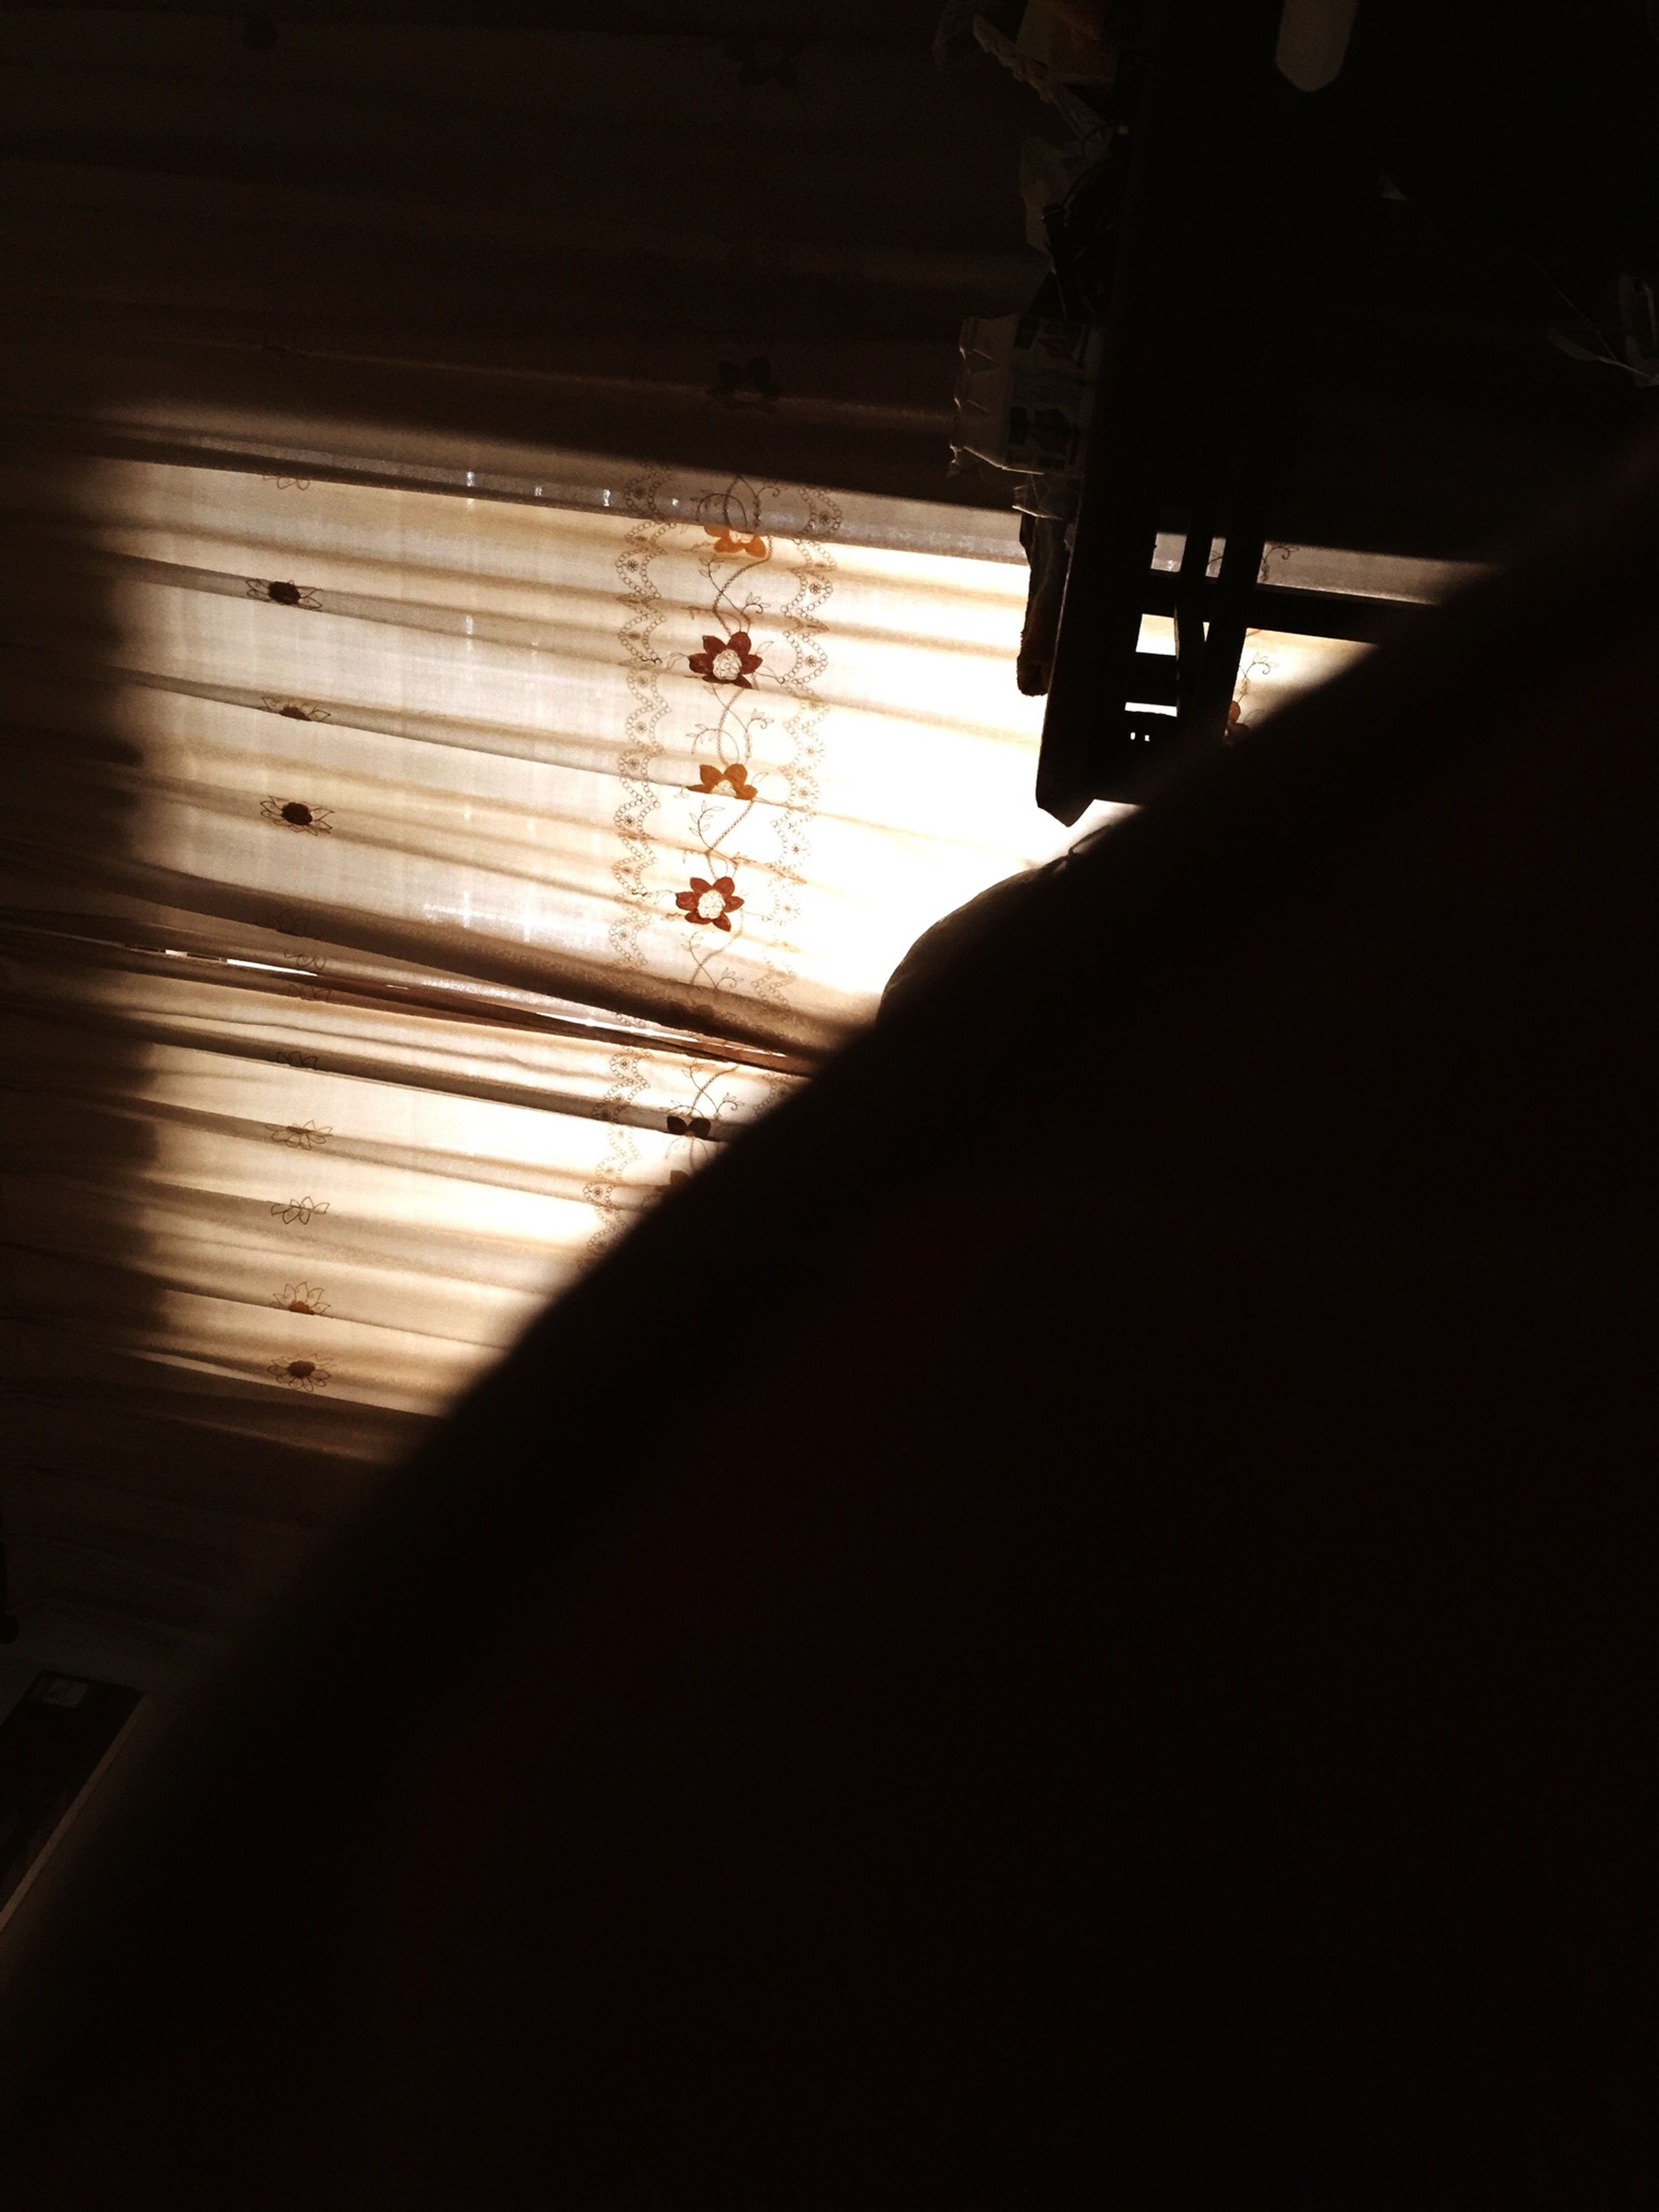 indoors, lifestyles, silhouette, dark, unrecognizable person, leisure activity, shadow, sunlight, men, standing, window, transportation, person, part of, high angle view, day